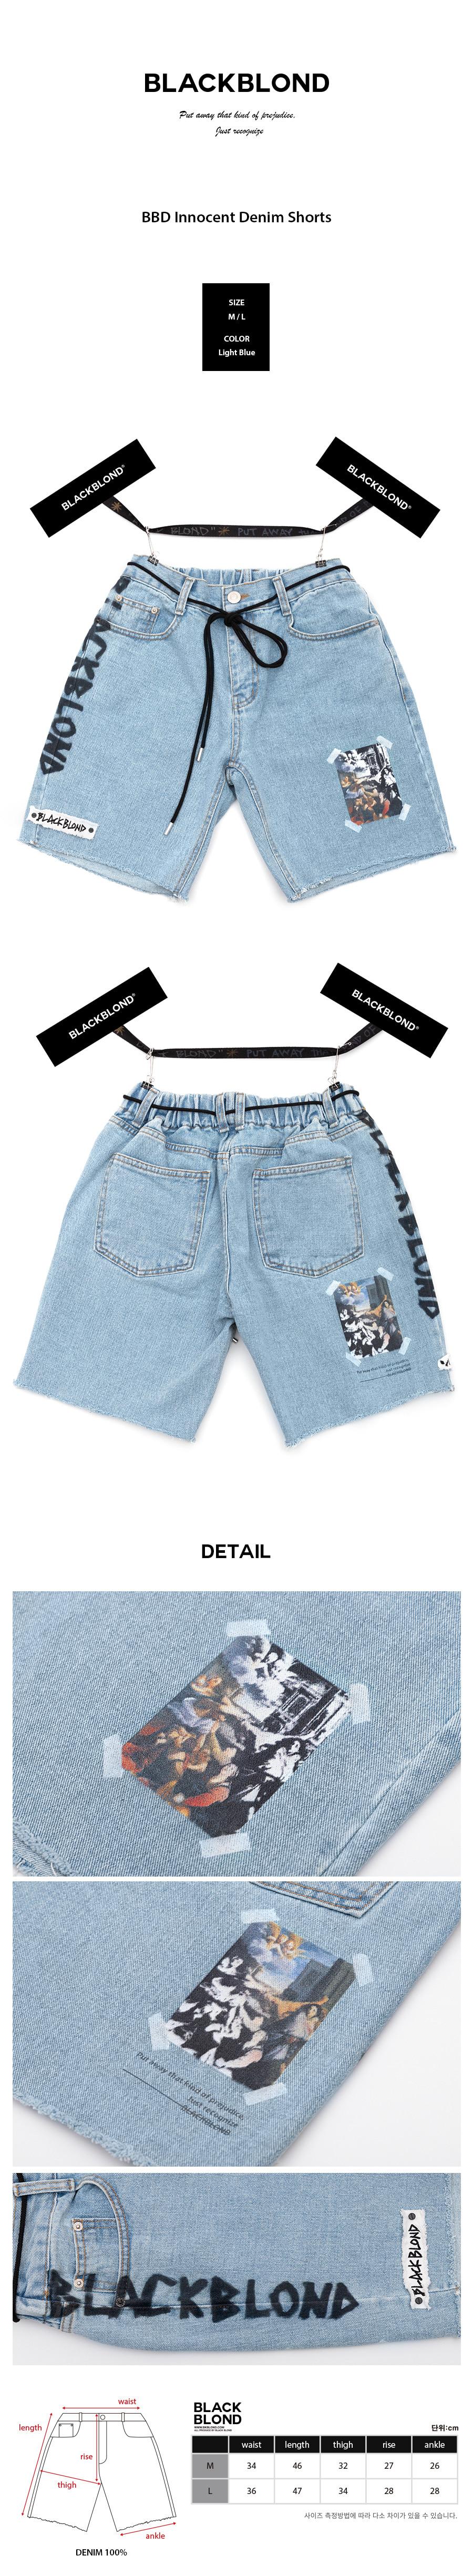 블랙블론드 BLACKBLOND - BBD Innocent Denim Shorts (Light Blue)